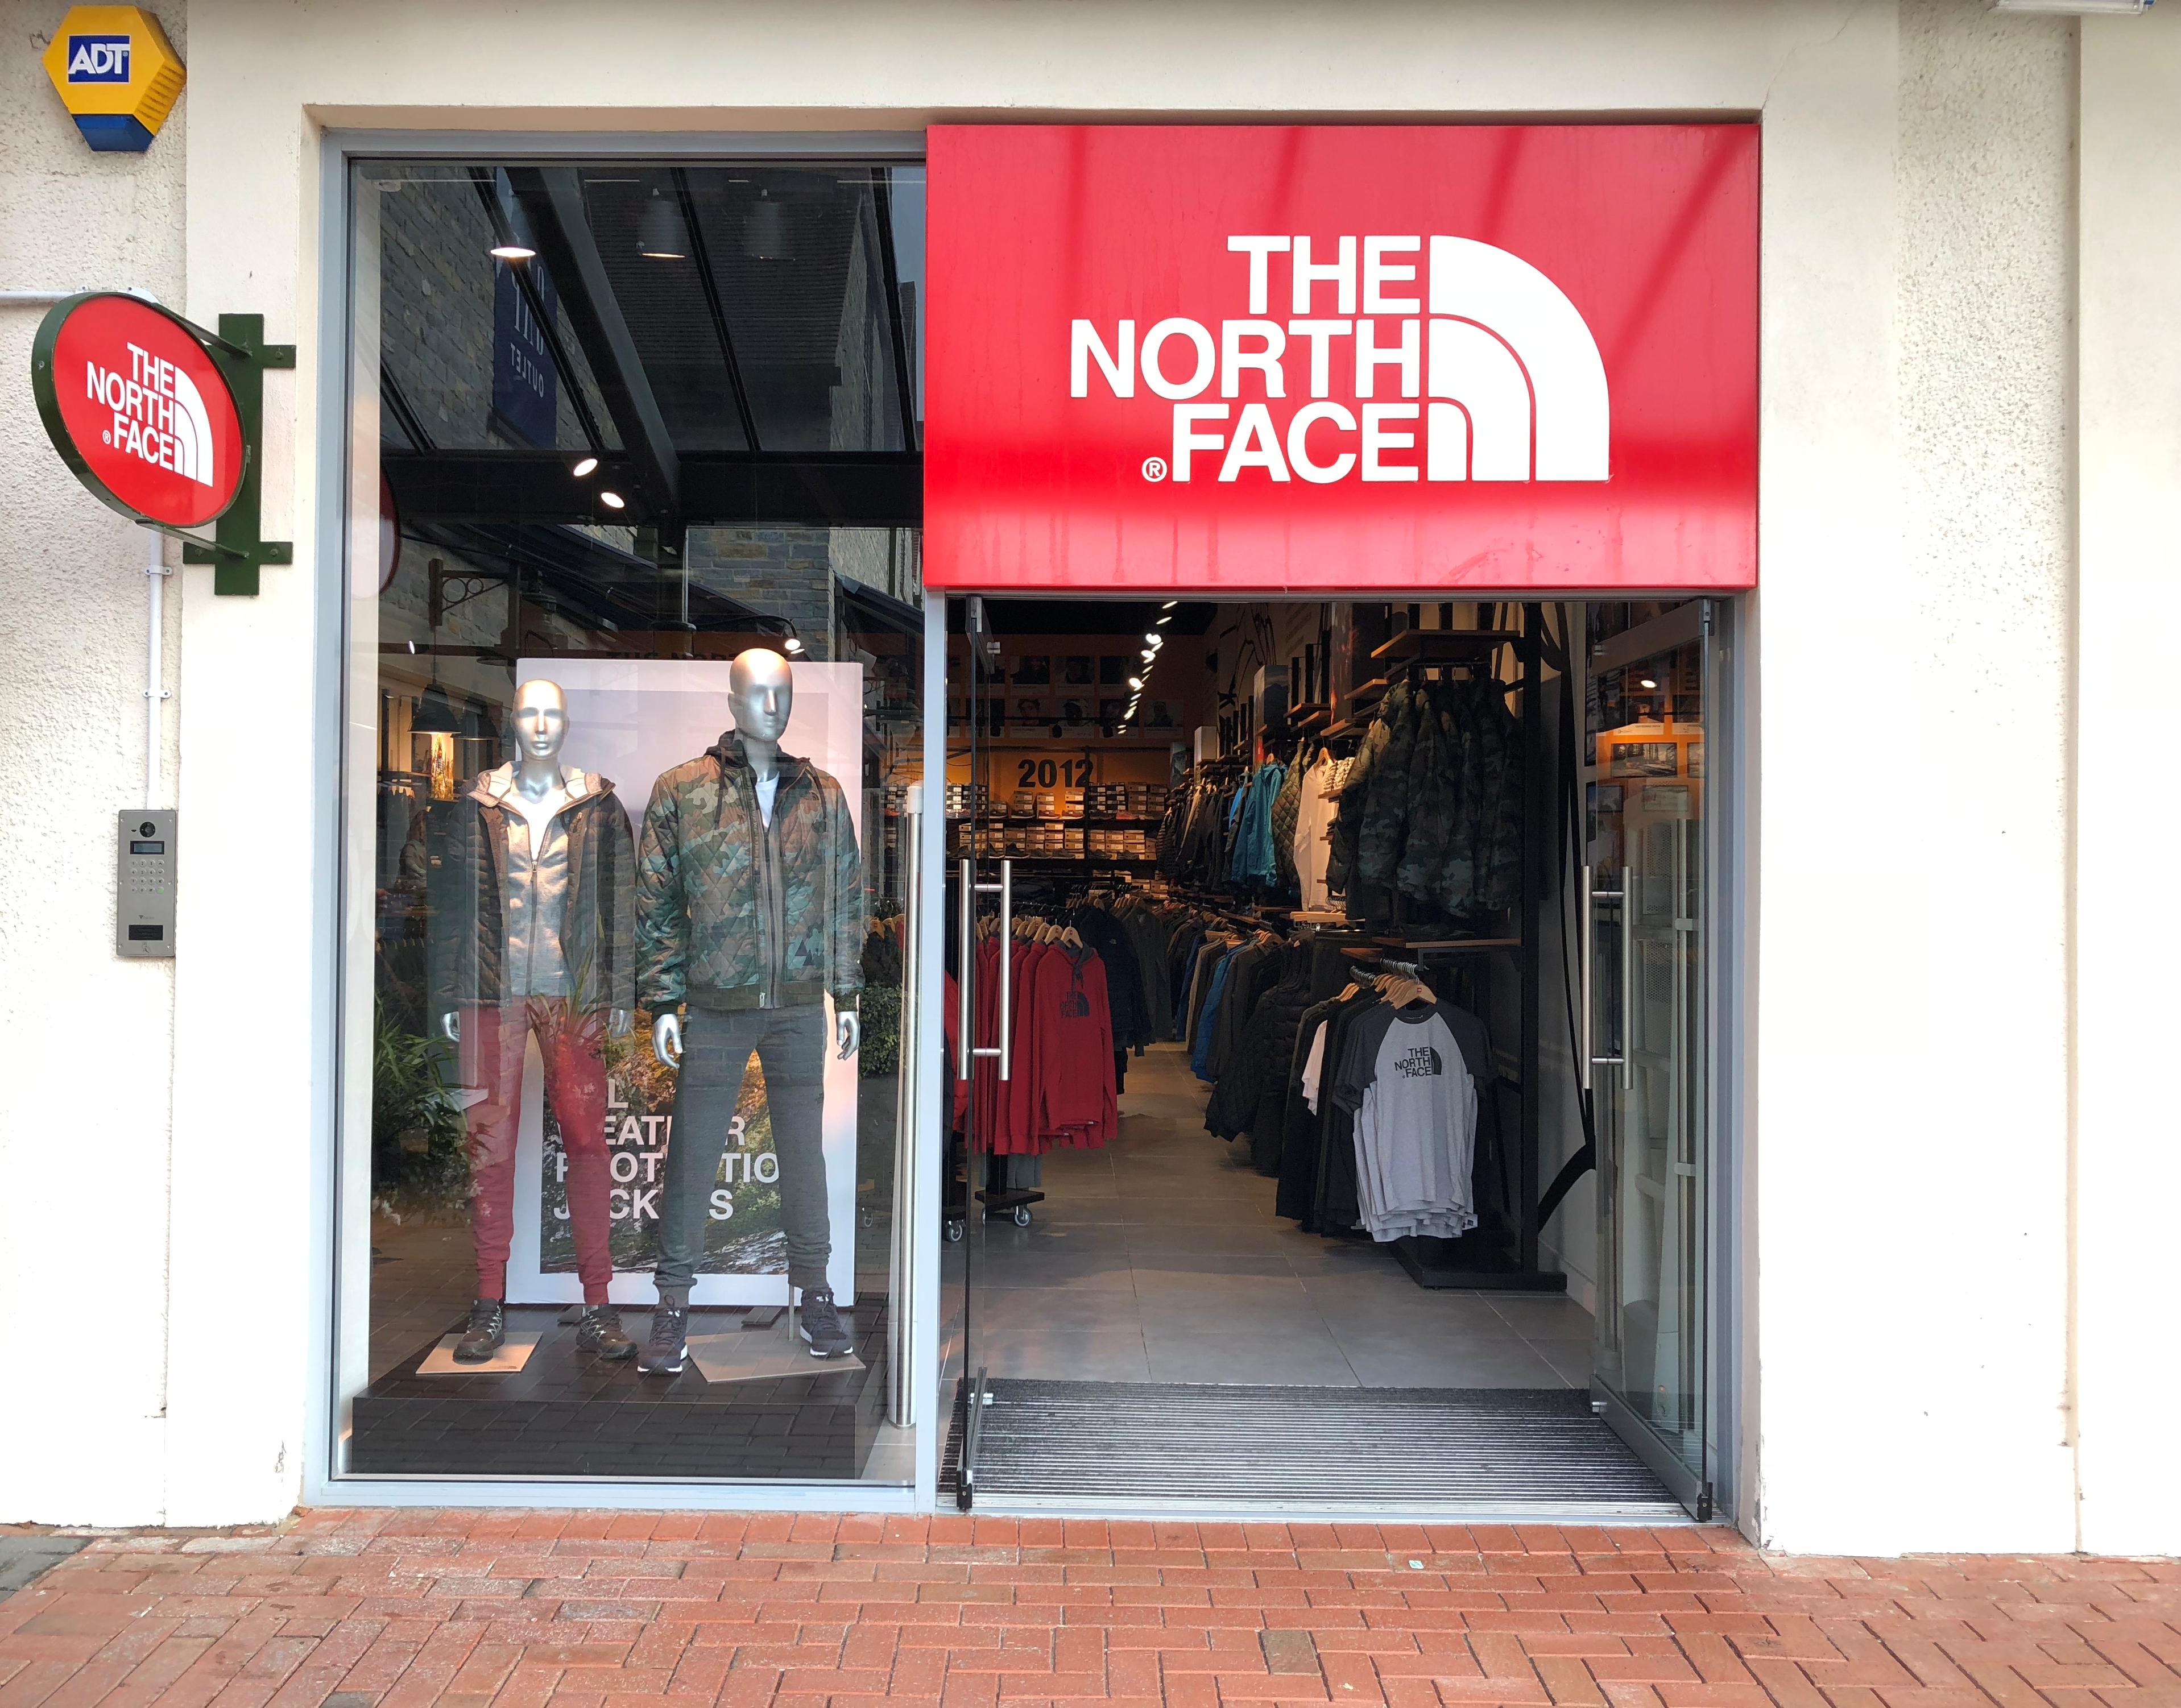 reputable site 5d861 3b667 The North Face® Store at Farm Road Street, Somerset, BA16 ...